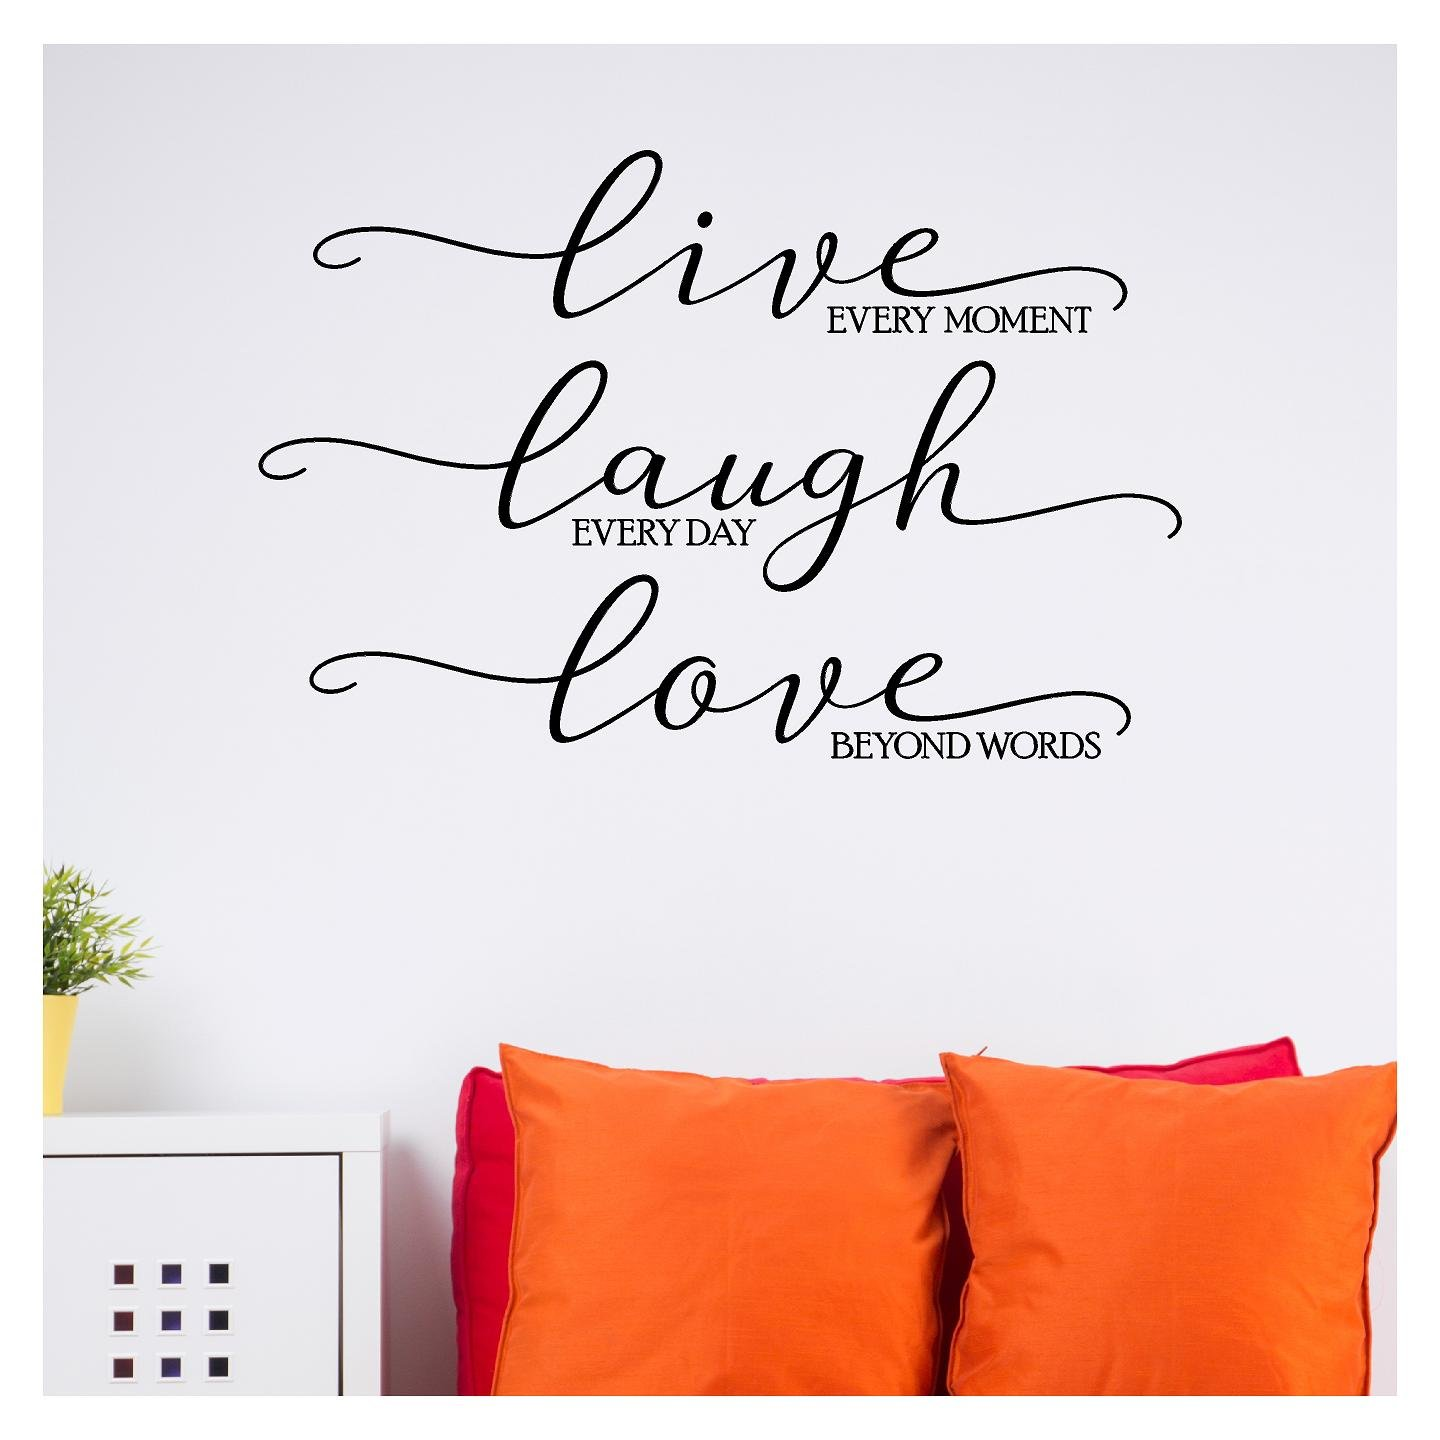 Live Every Moment, Laugh Everyday, Love Beyond Words Vinyl Lettering Wall Decal Sticker (Black, 16.5''H x 25''W)